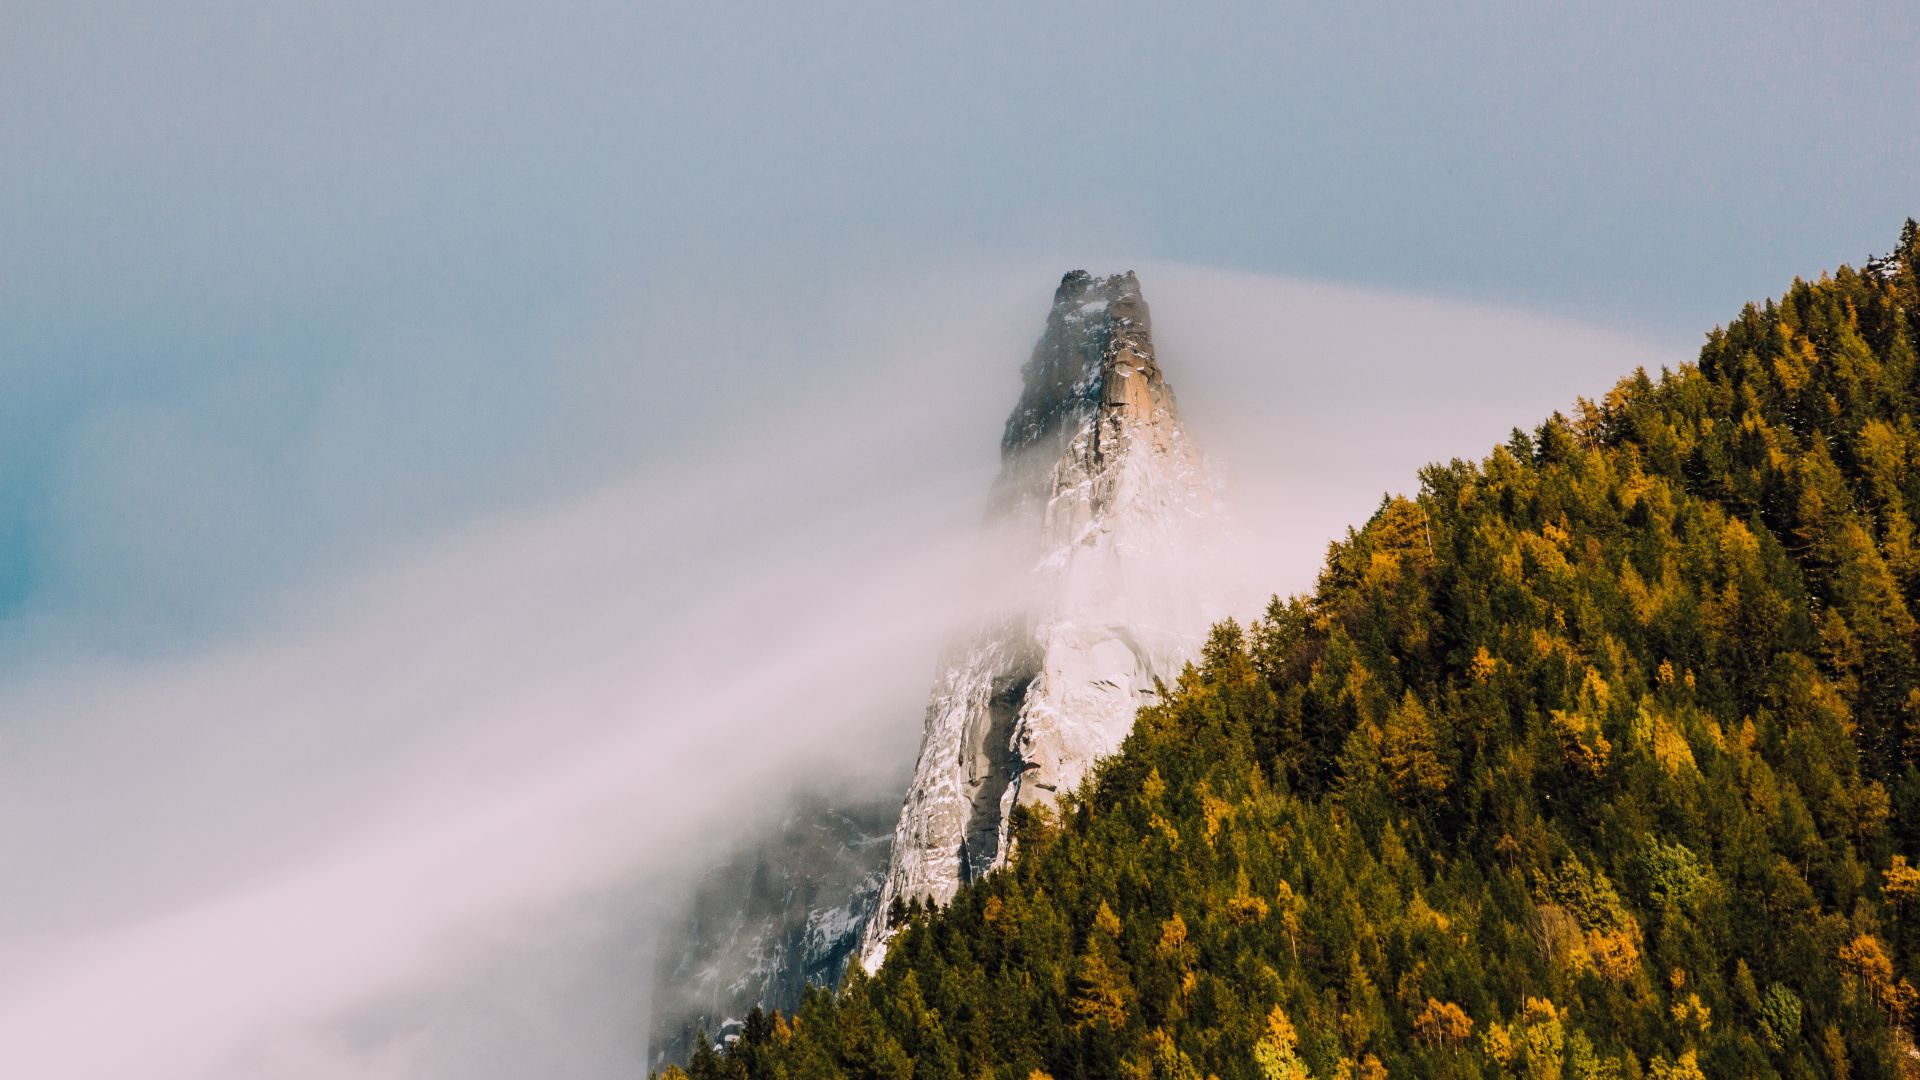 Wallpaper Mountain cliff, fog, tree, forest, nature